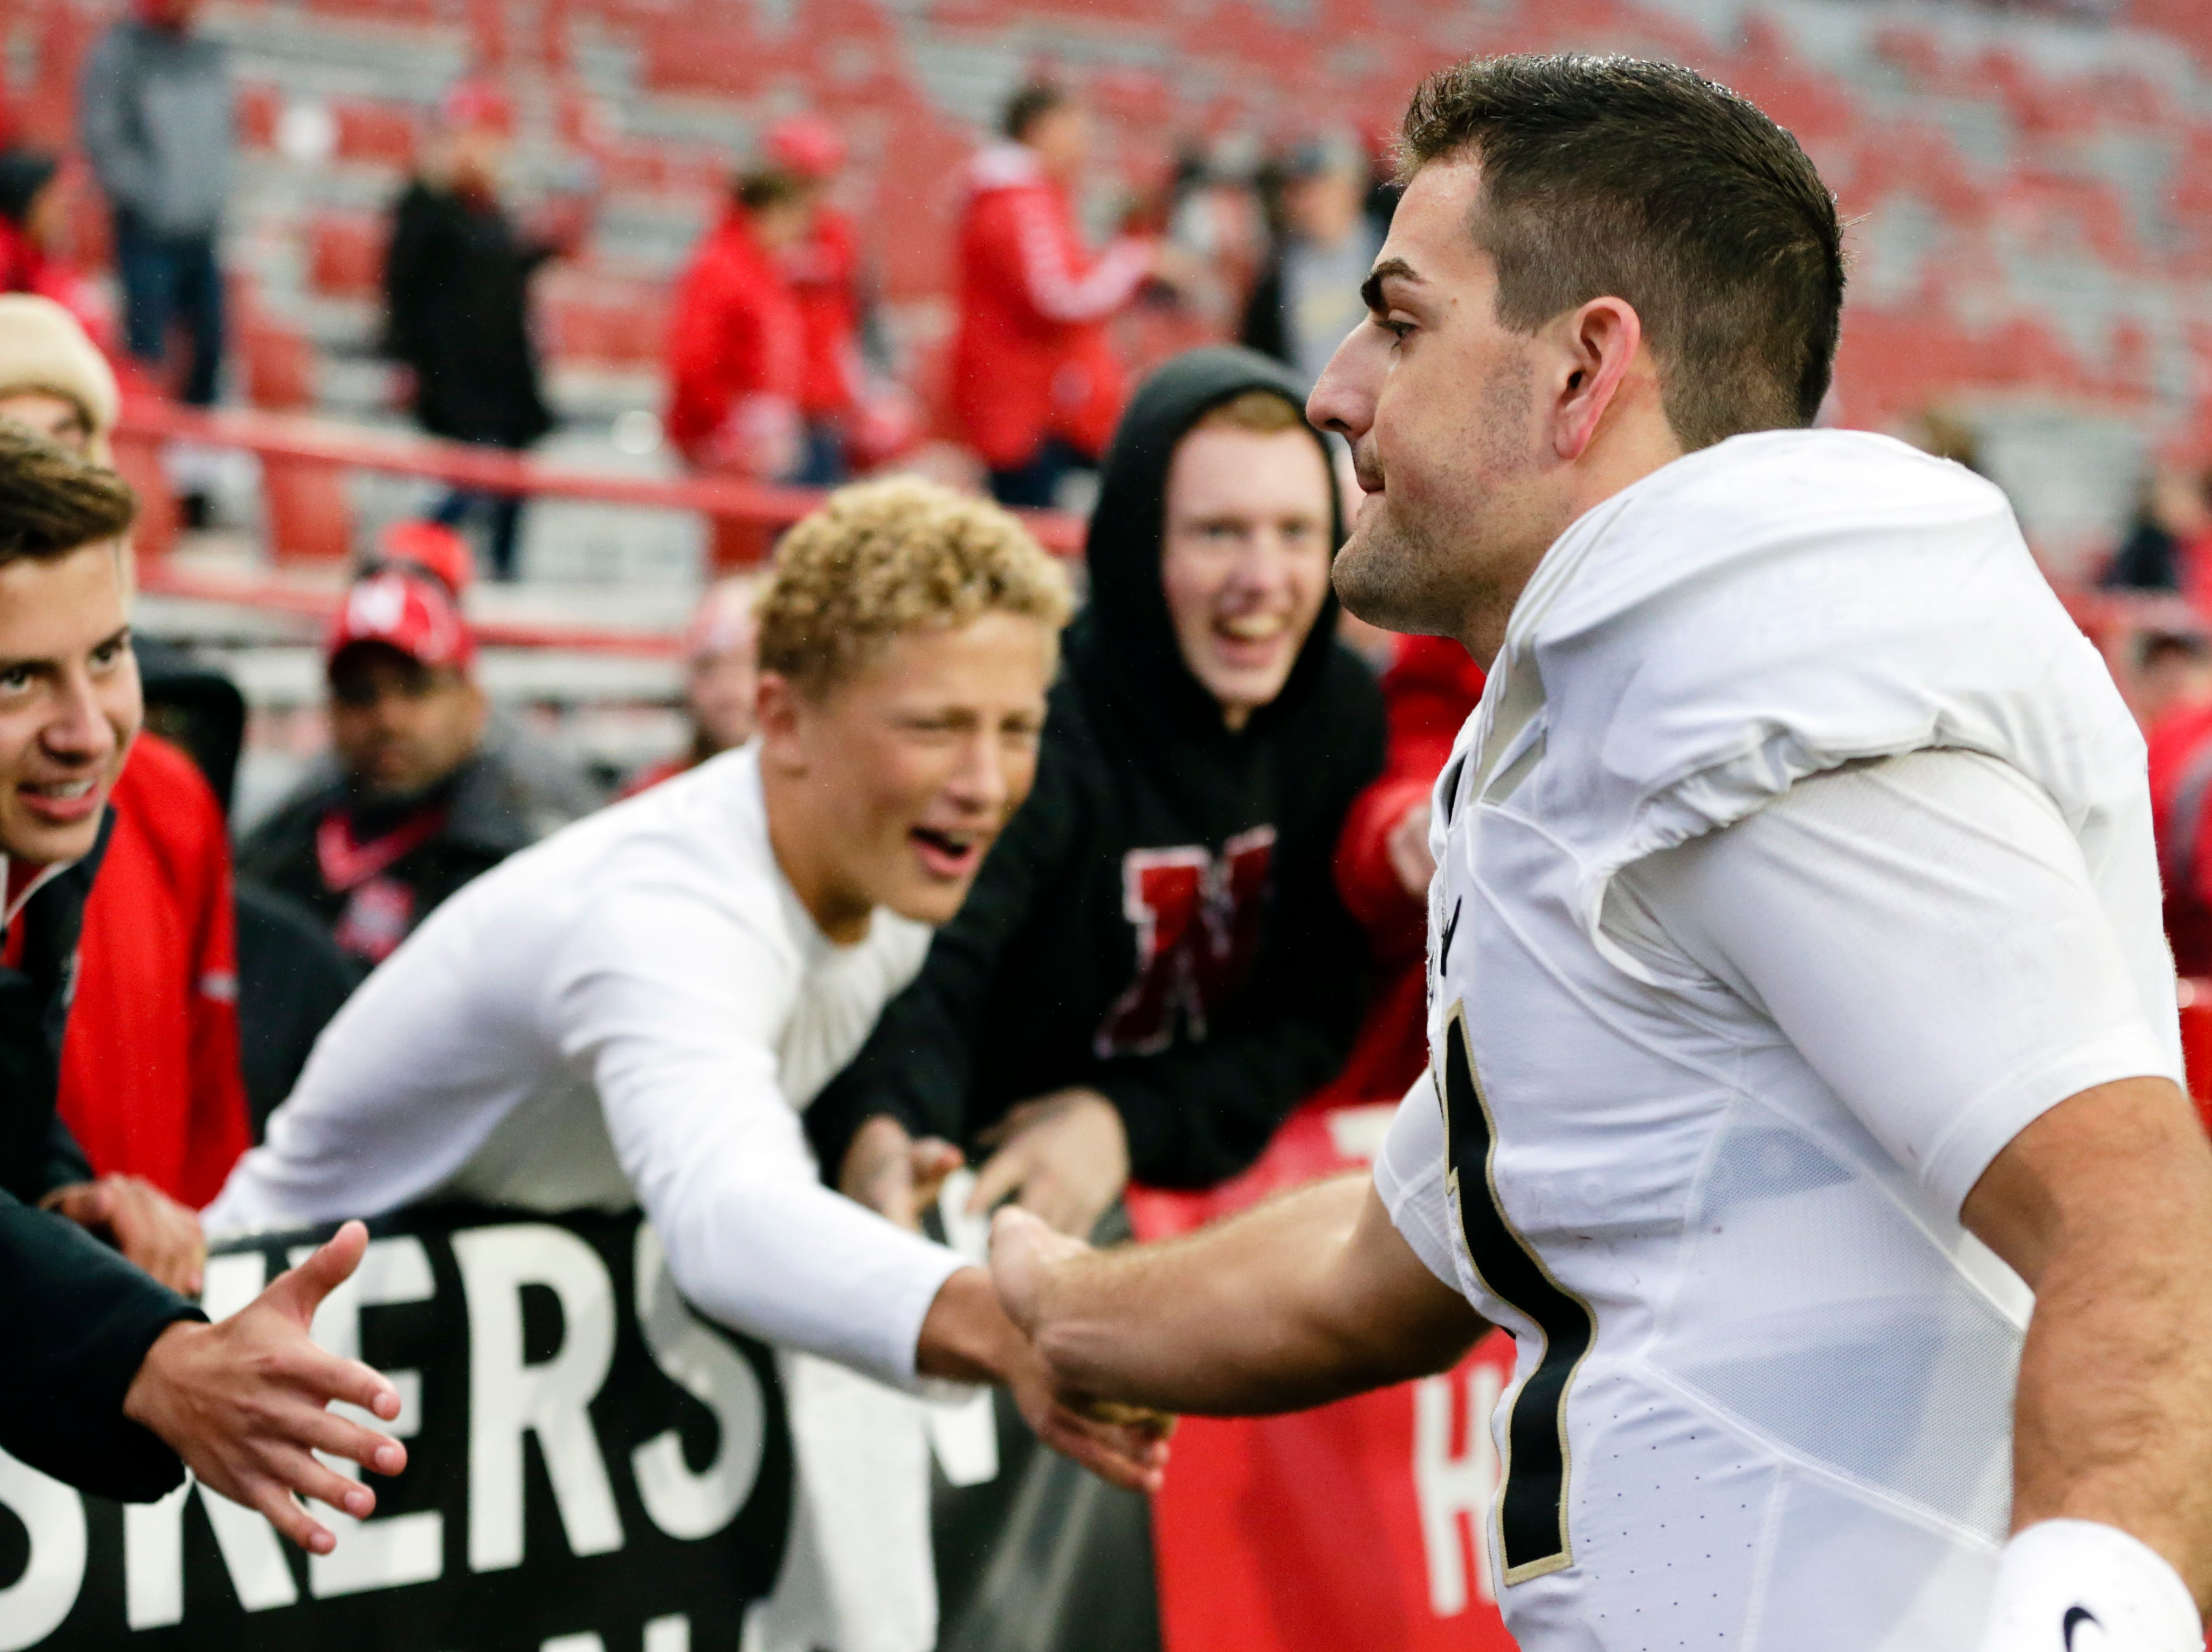 Purdue quarterback David Blough (11) is greeted by supporters follow an NCAA college football game against Nebraska in Lincoln, Neb., Saturday, Sept. 29, 2018. Purdue won 42-28. (AP Photo/Nati Harnik)